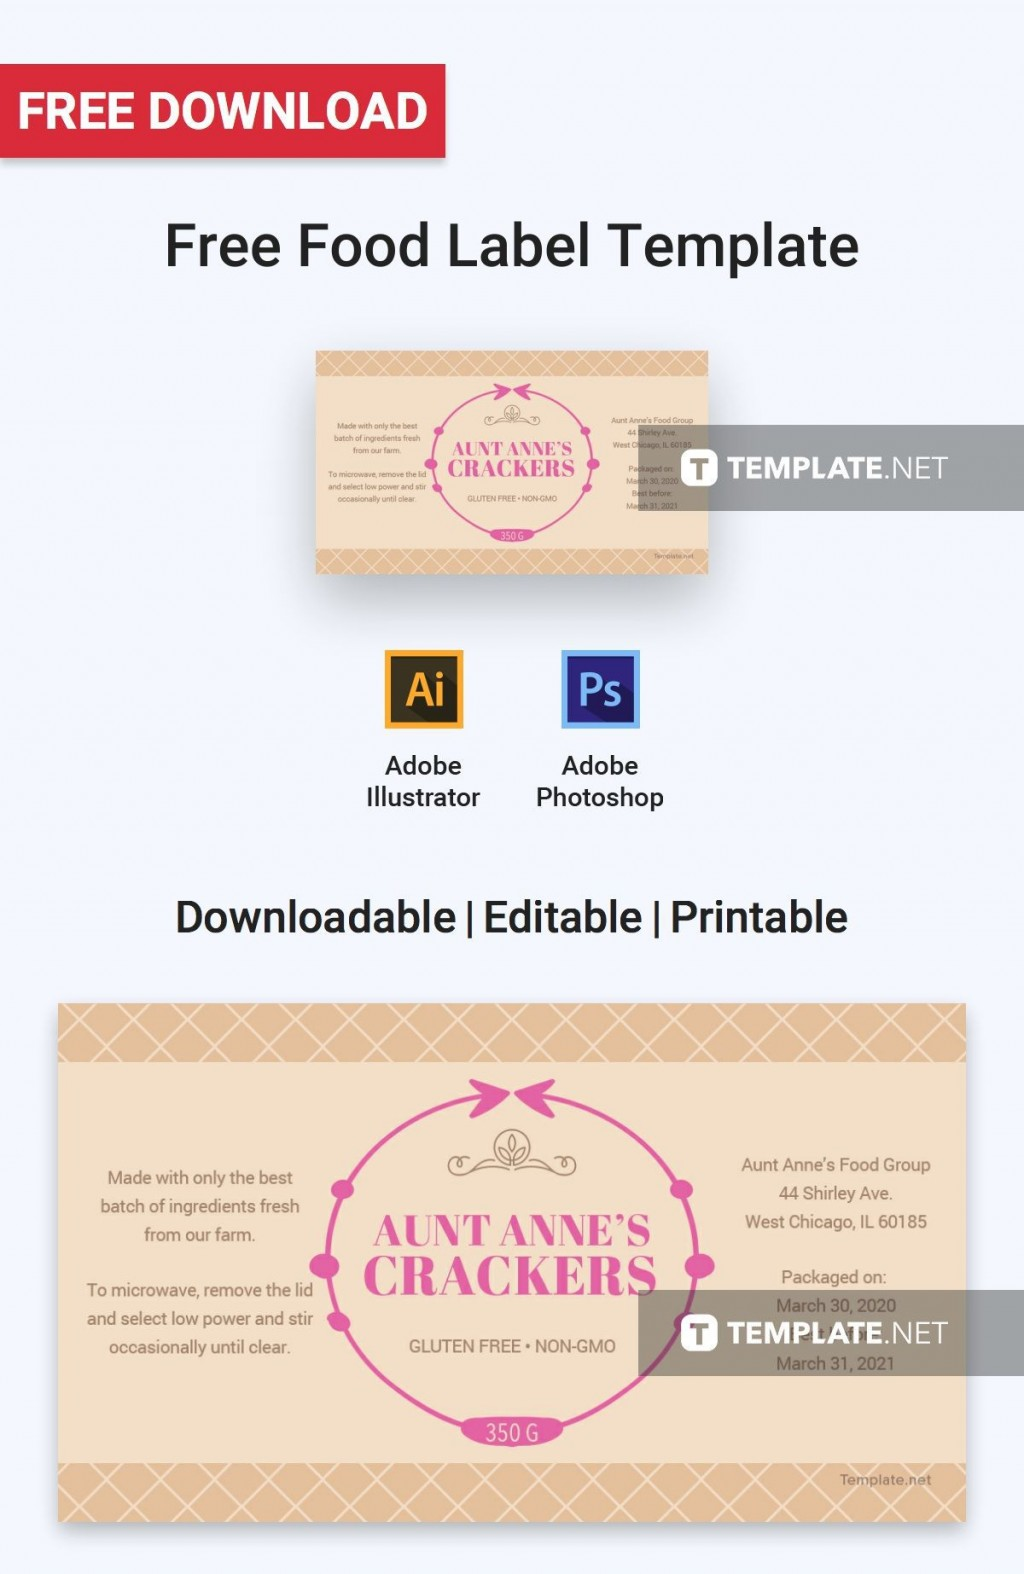 004 Outstanding Free Food Label Design Template High Definition  Templates DownloadLarge